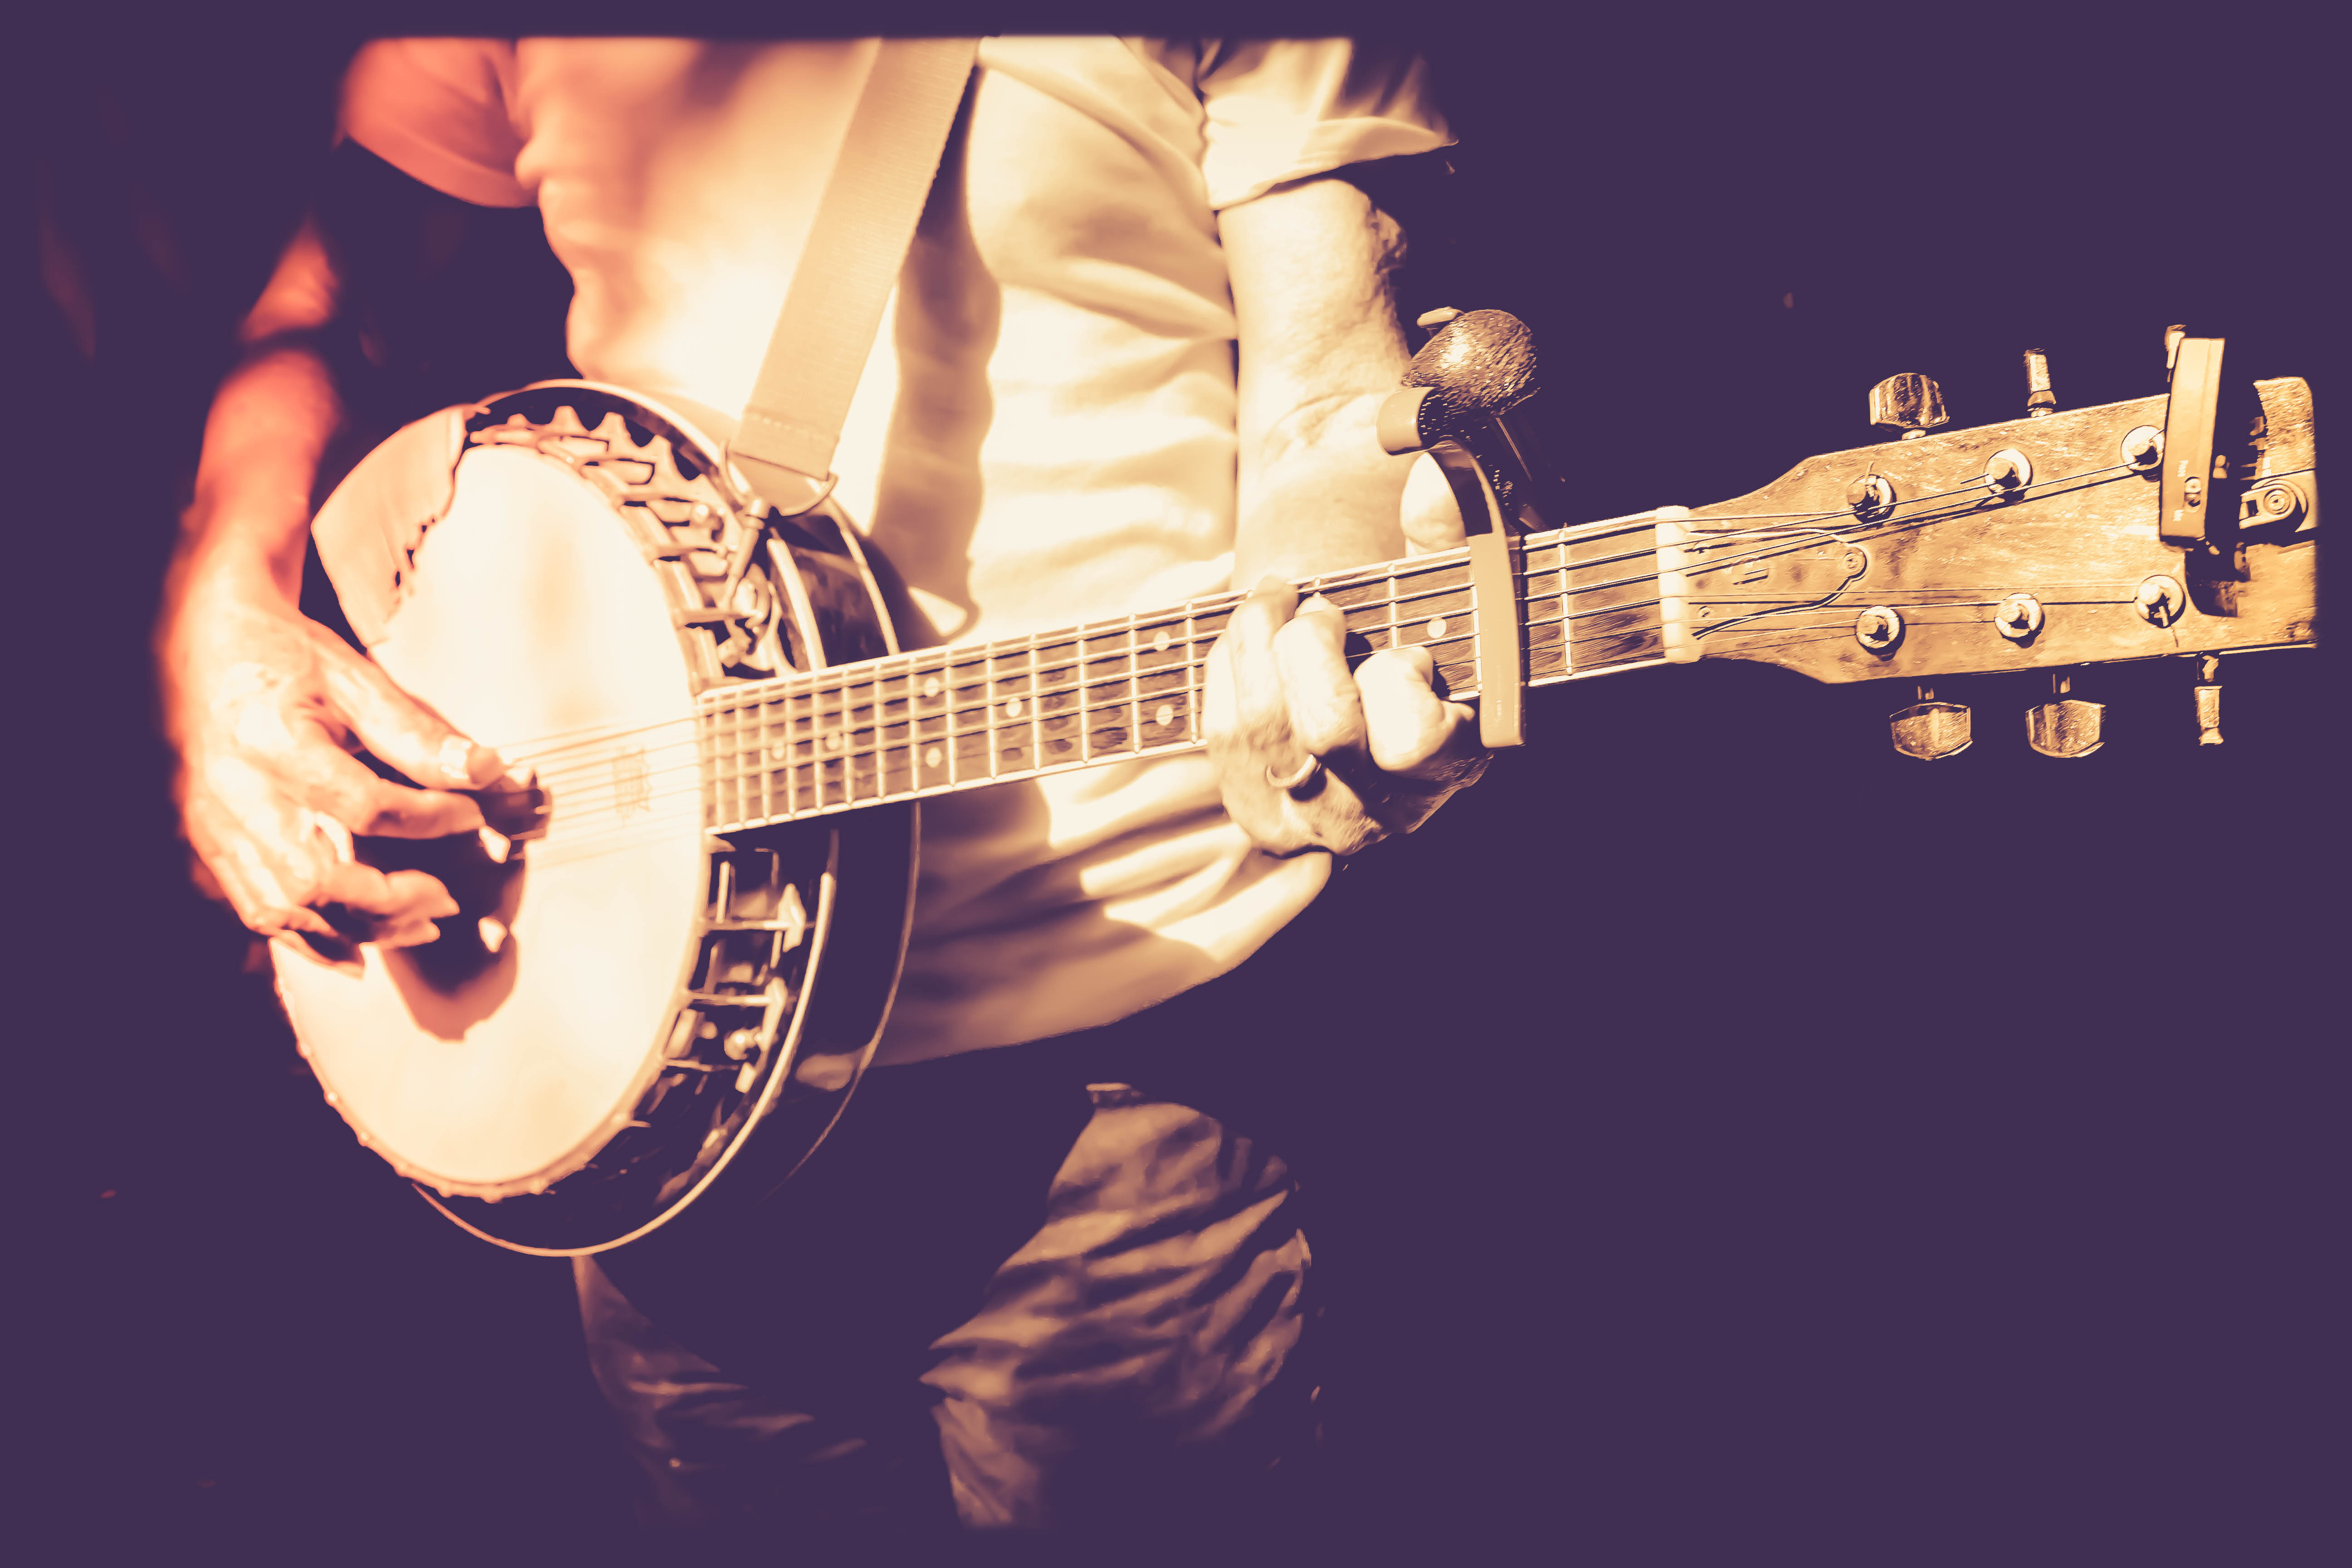 musician playing banjo in retro filter photo